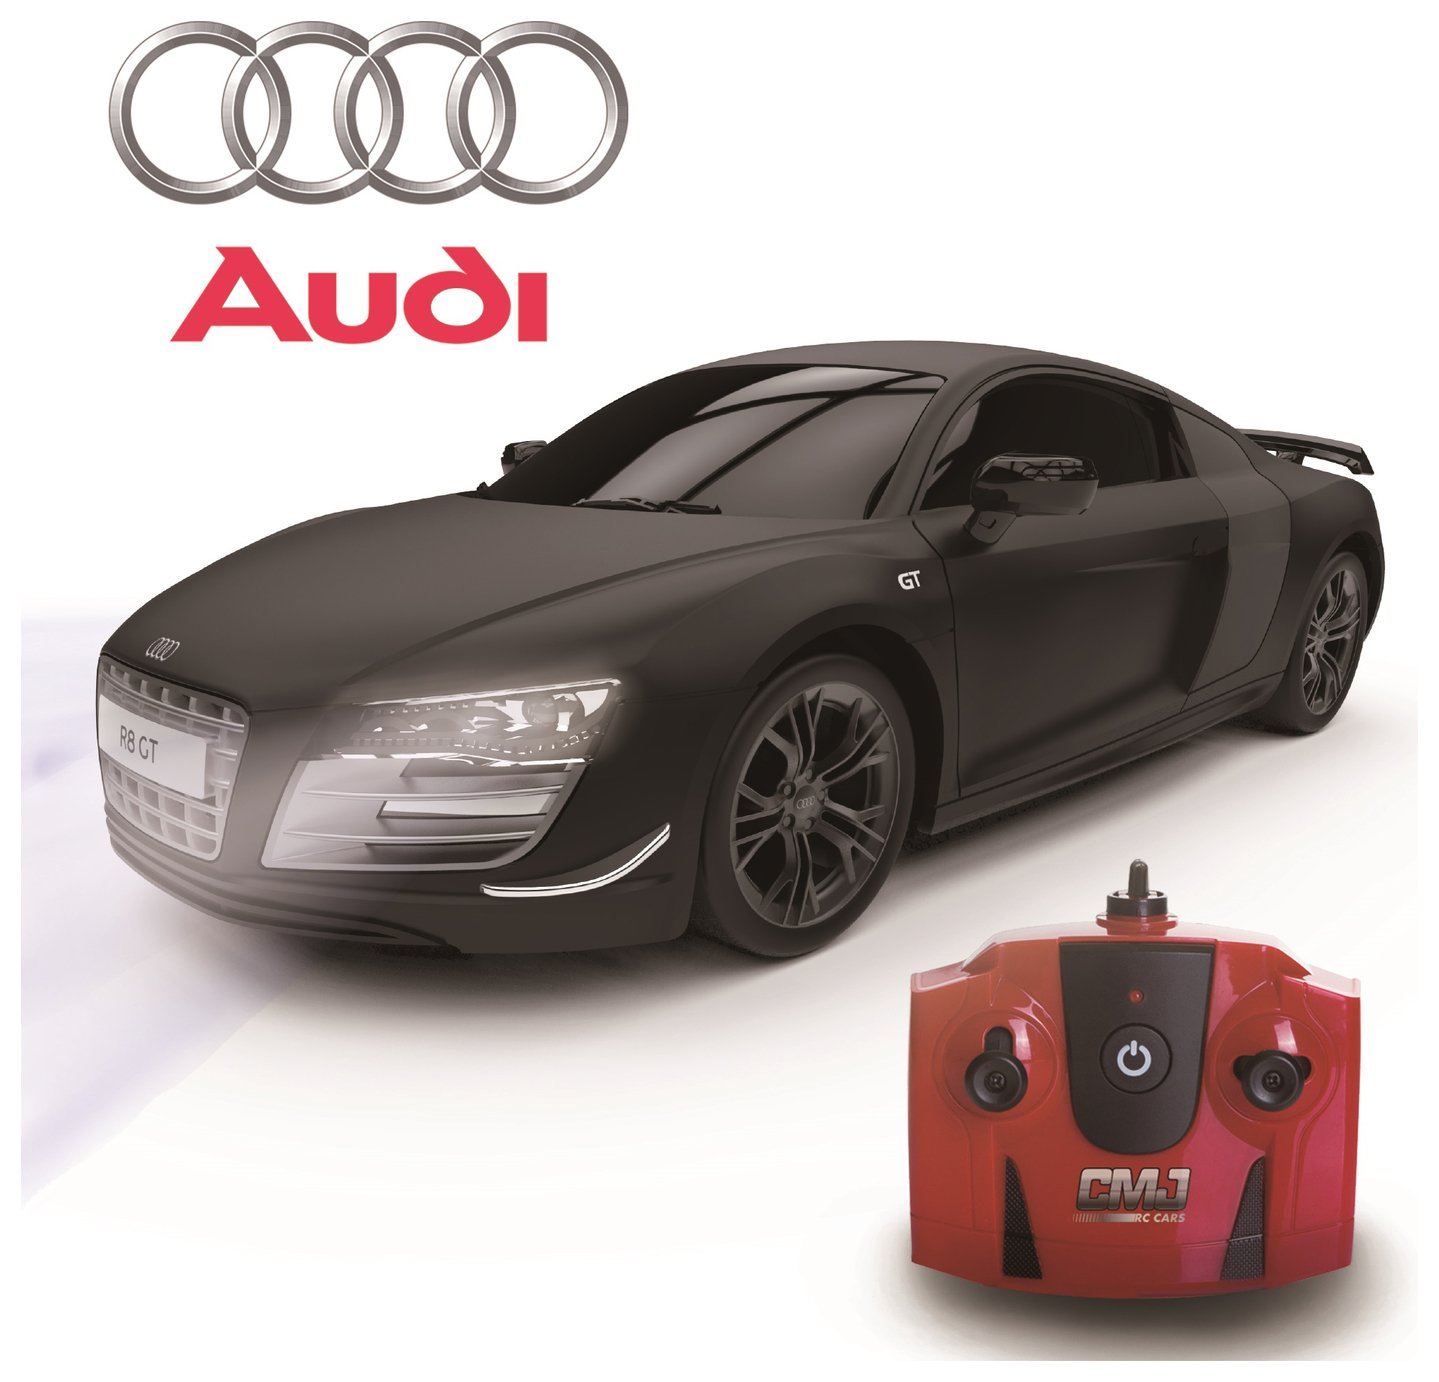 Image of Audi R8 1:24 Remote Control Car - Black.